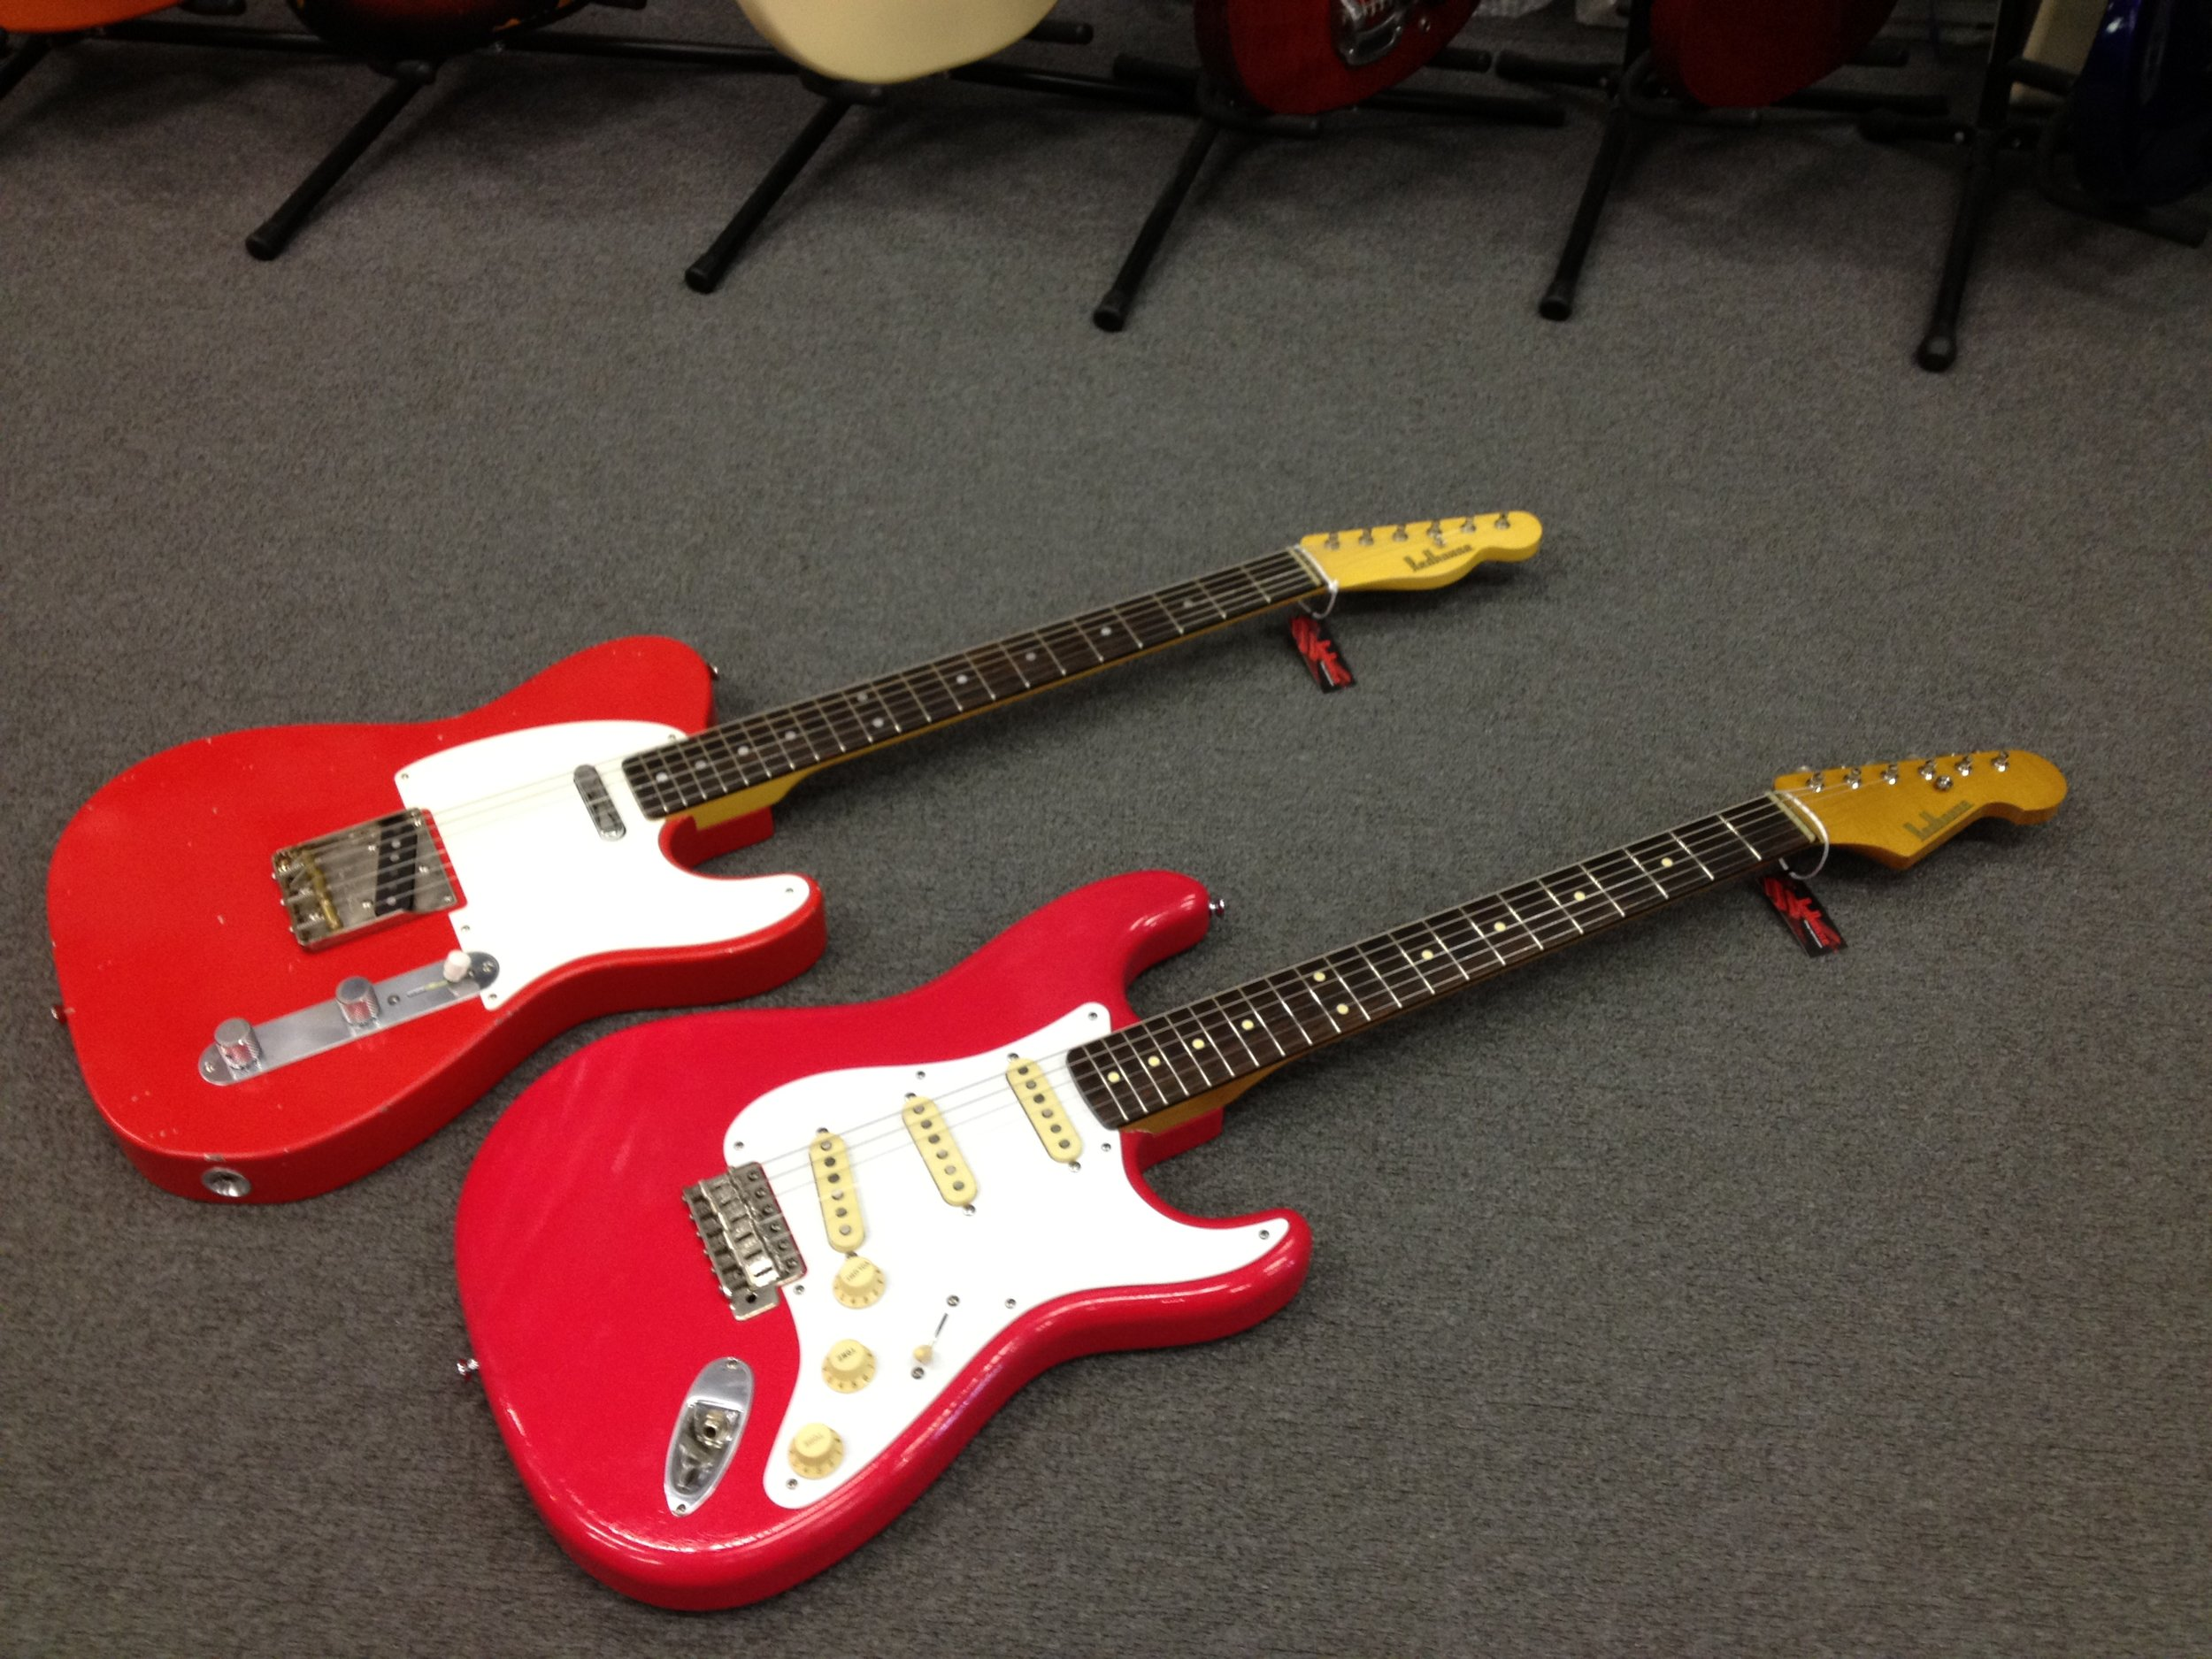 Redhouse Guitars